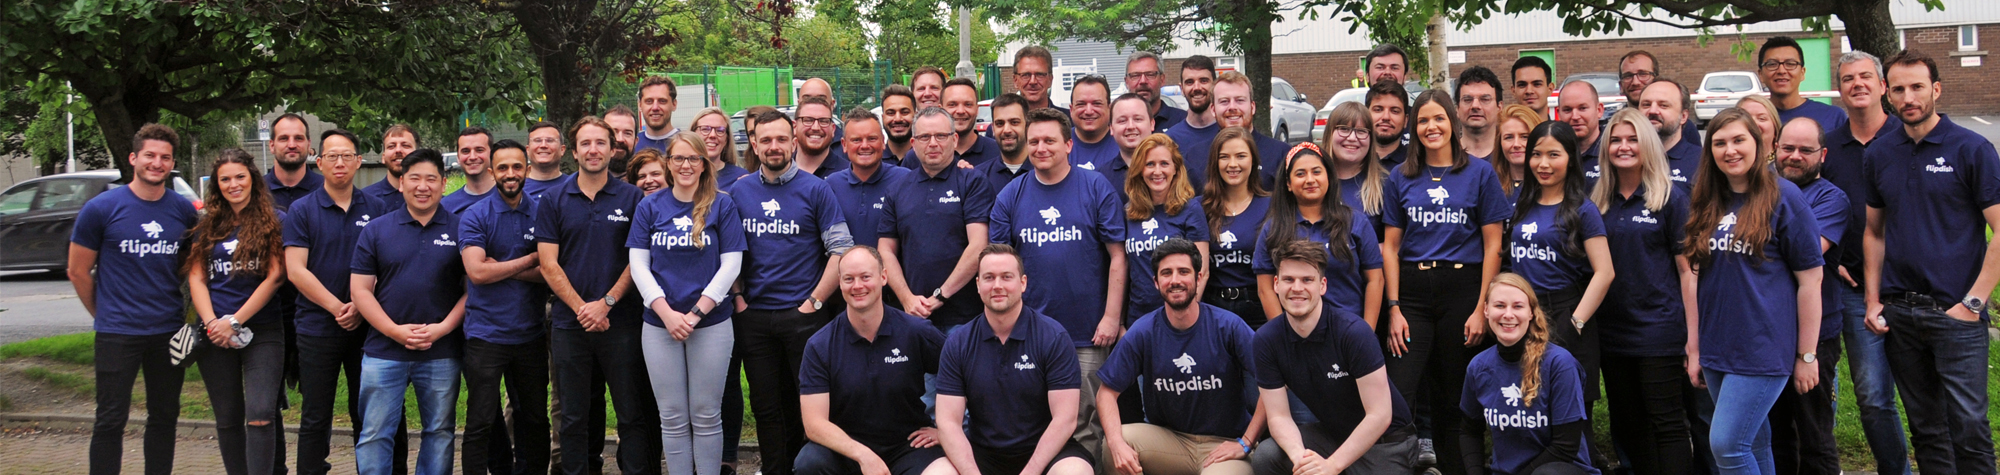 Careers at Flipdish: Why I think you should join our mission